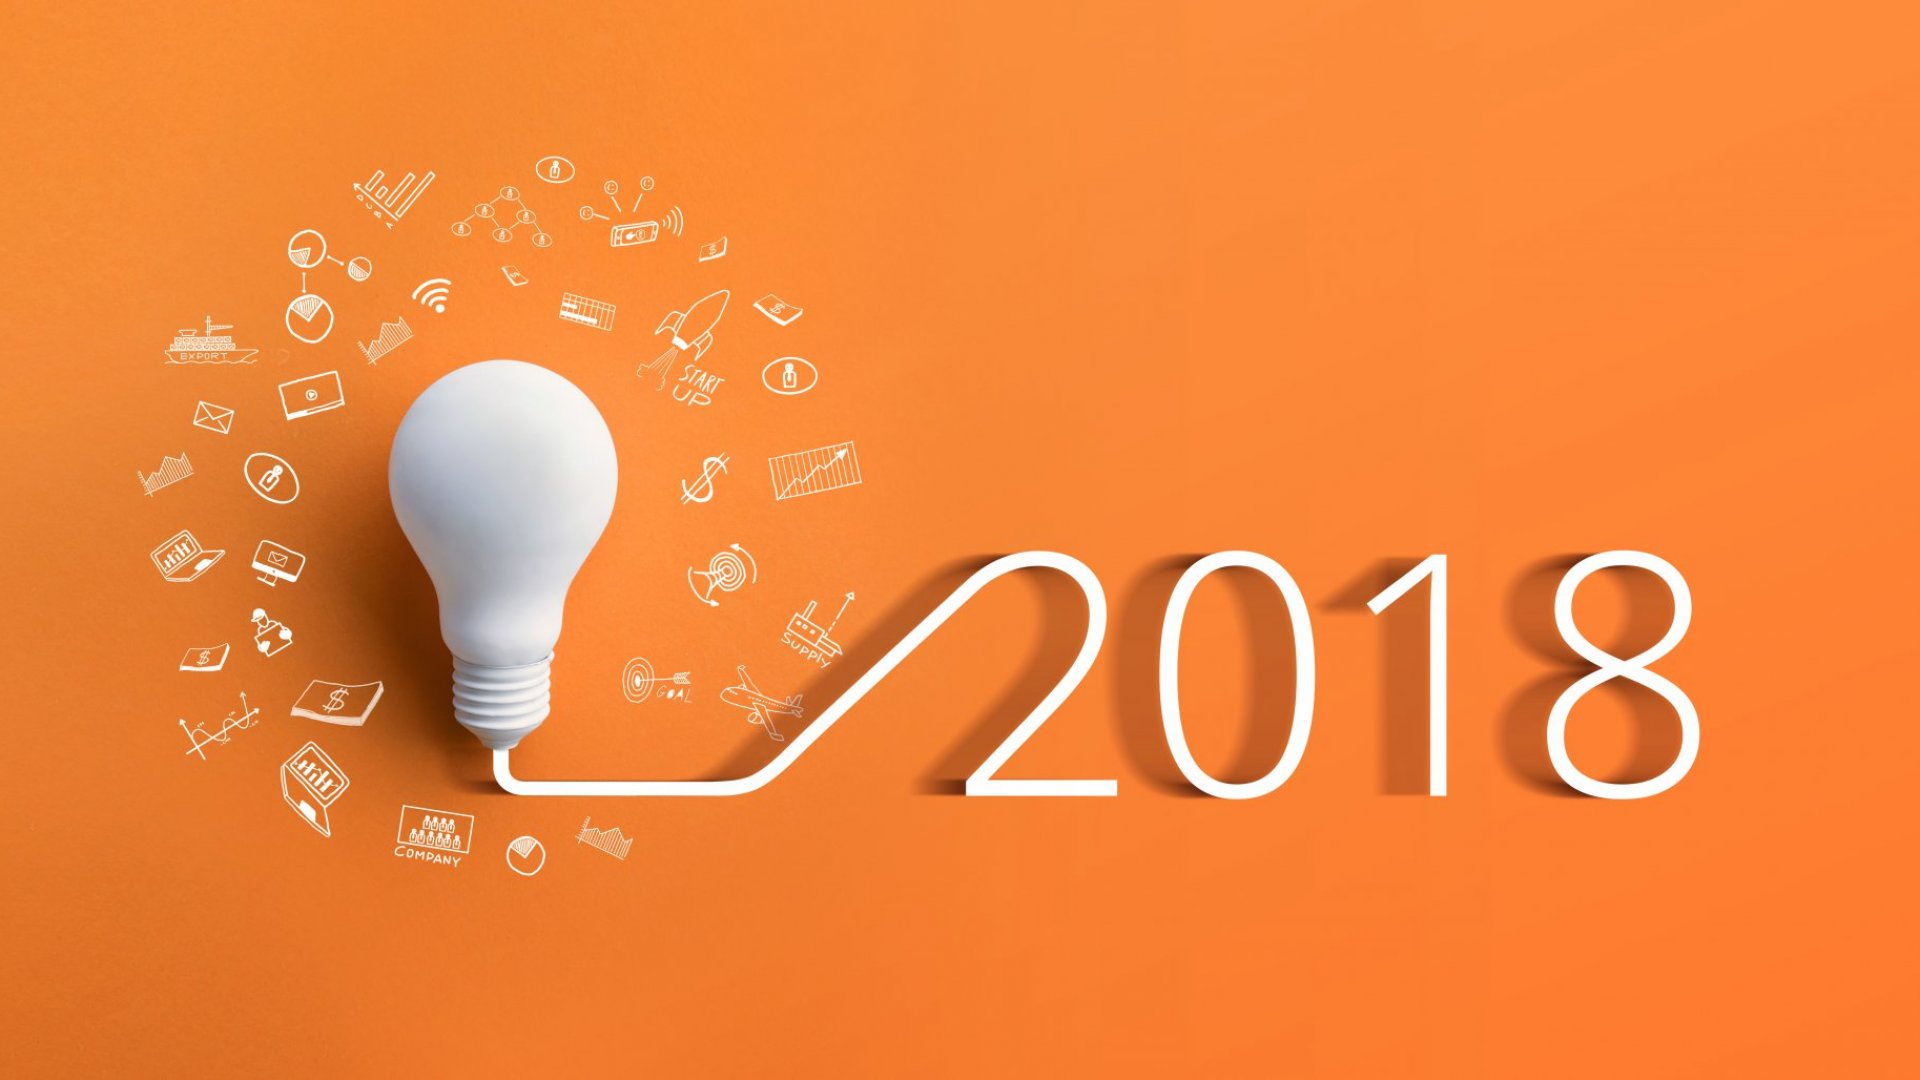 4 Professional Resolutions to Kick-start Your New Year